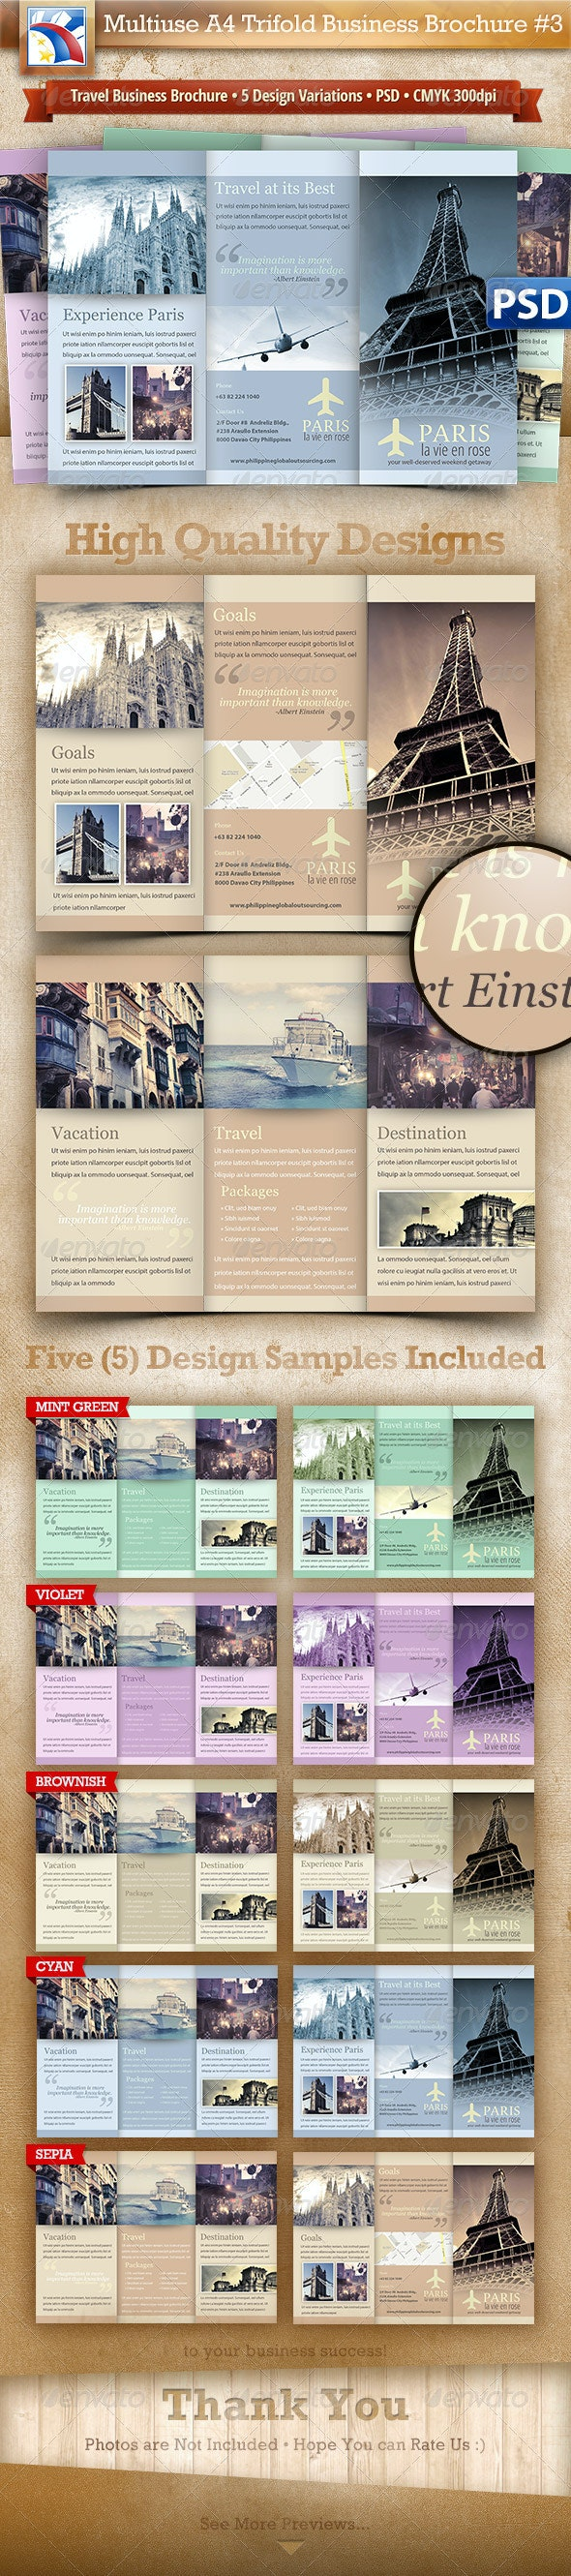 Business Travel A4 Trifold Brochure 5 Variations#3 - Brochures Print Templates